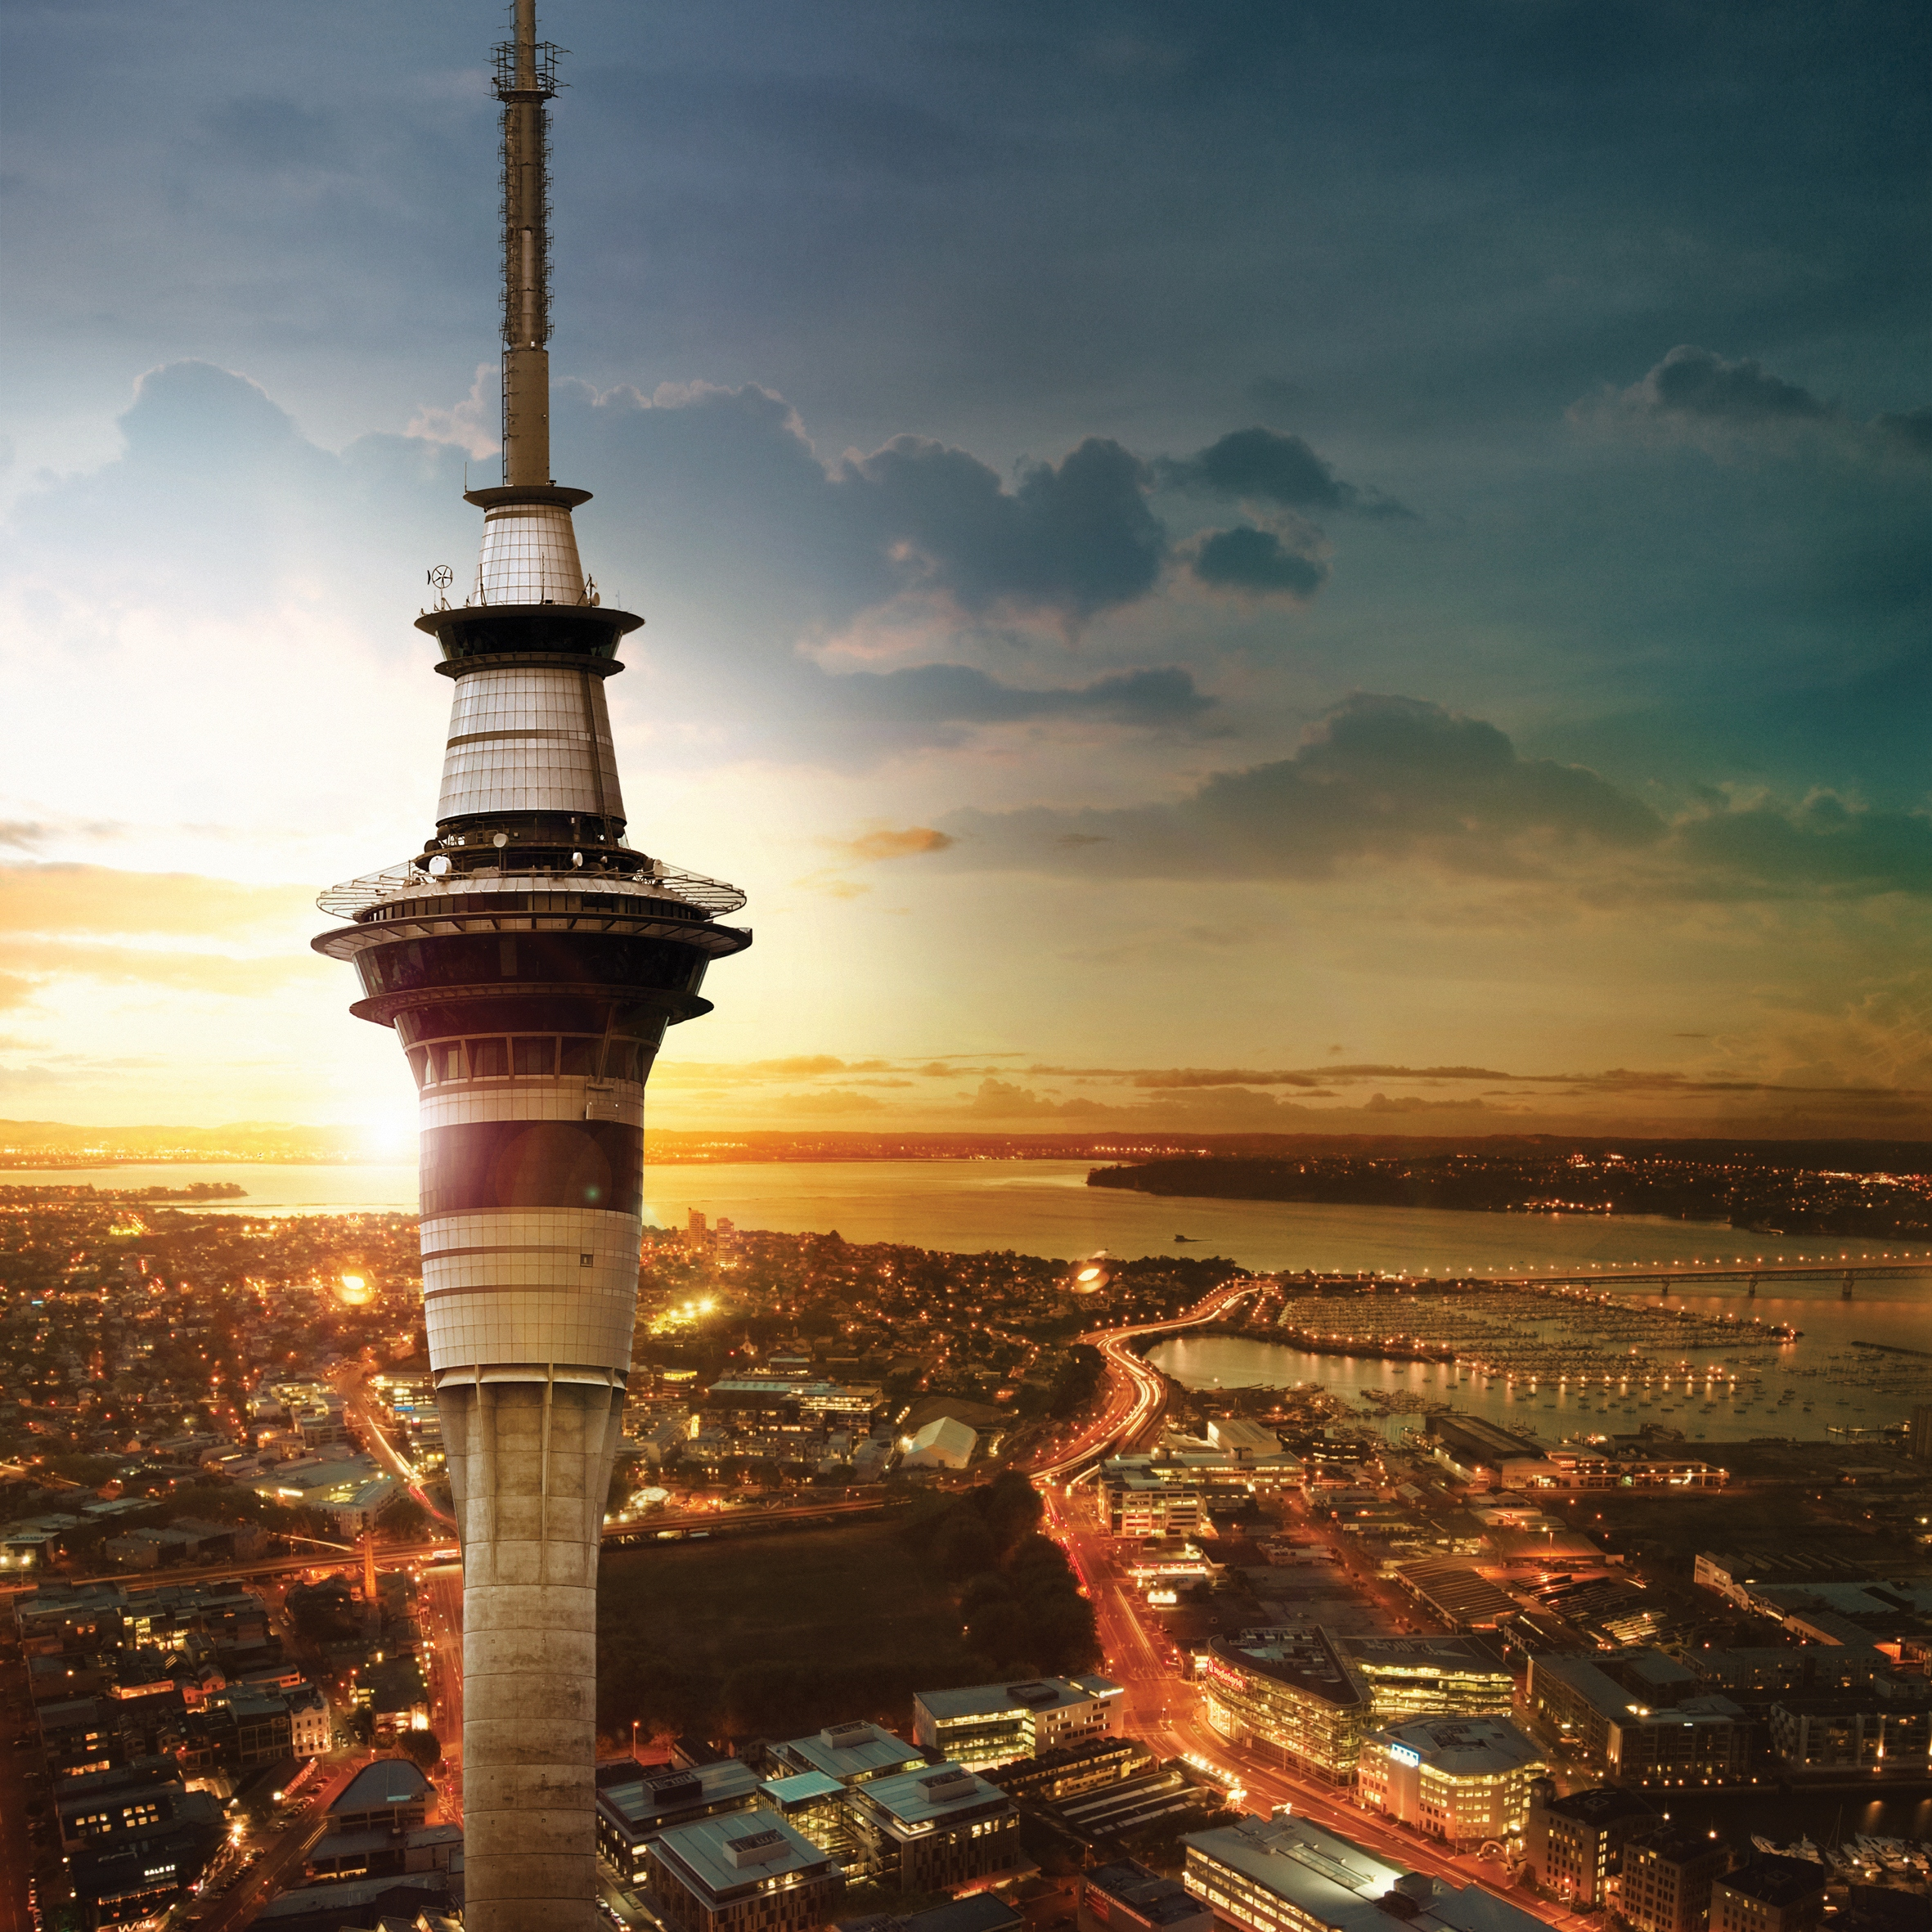 Sky Tower Auckland Activities Attractions Heart Of The City